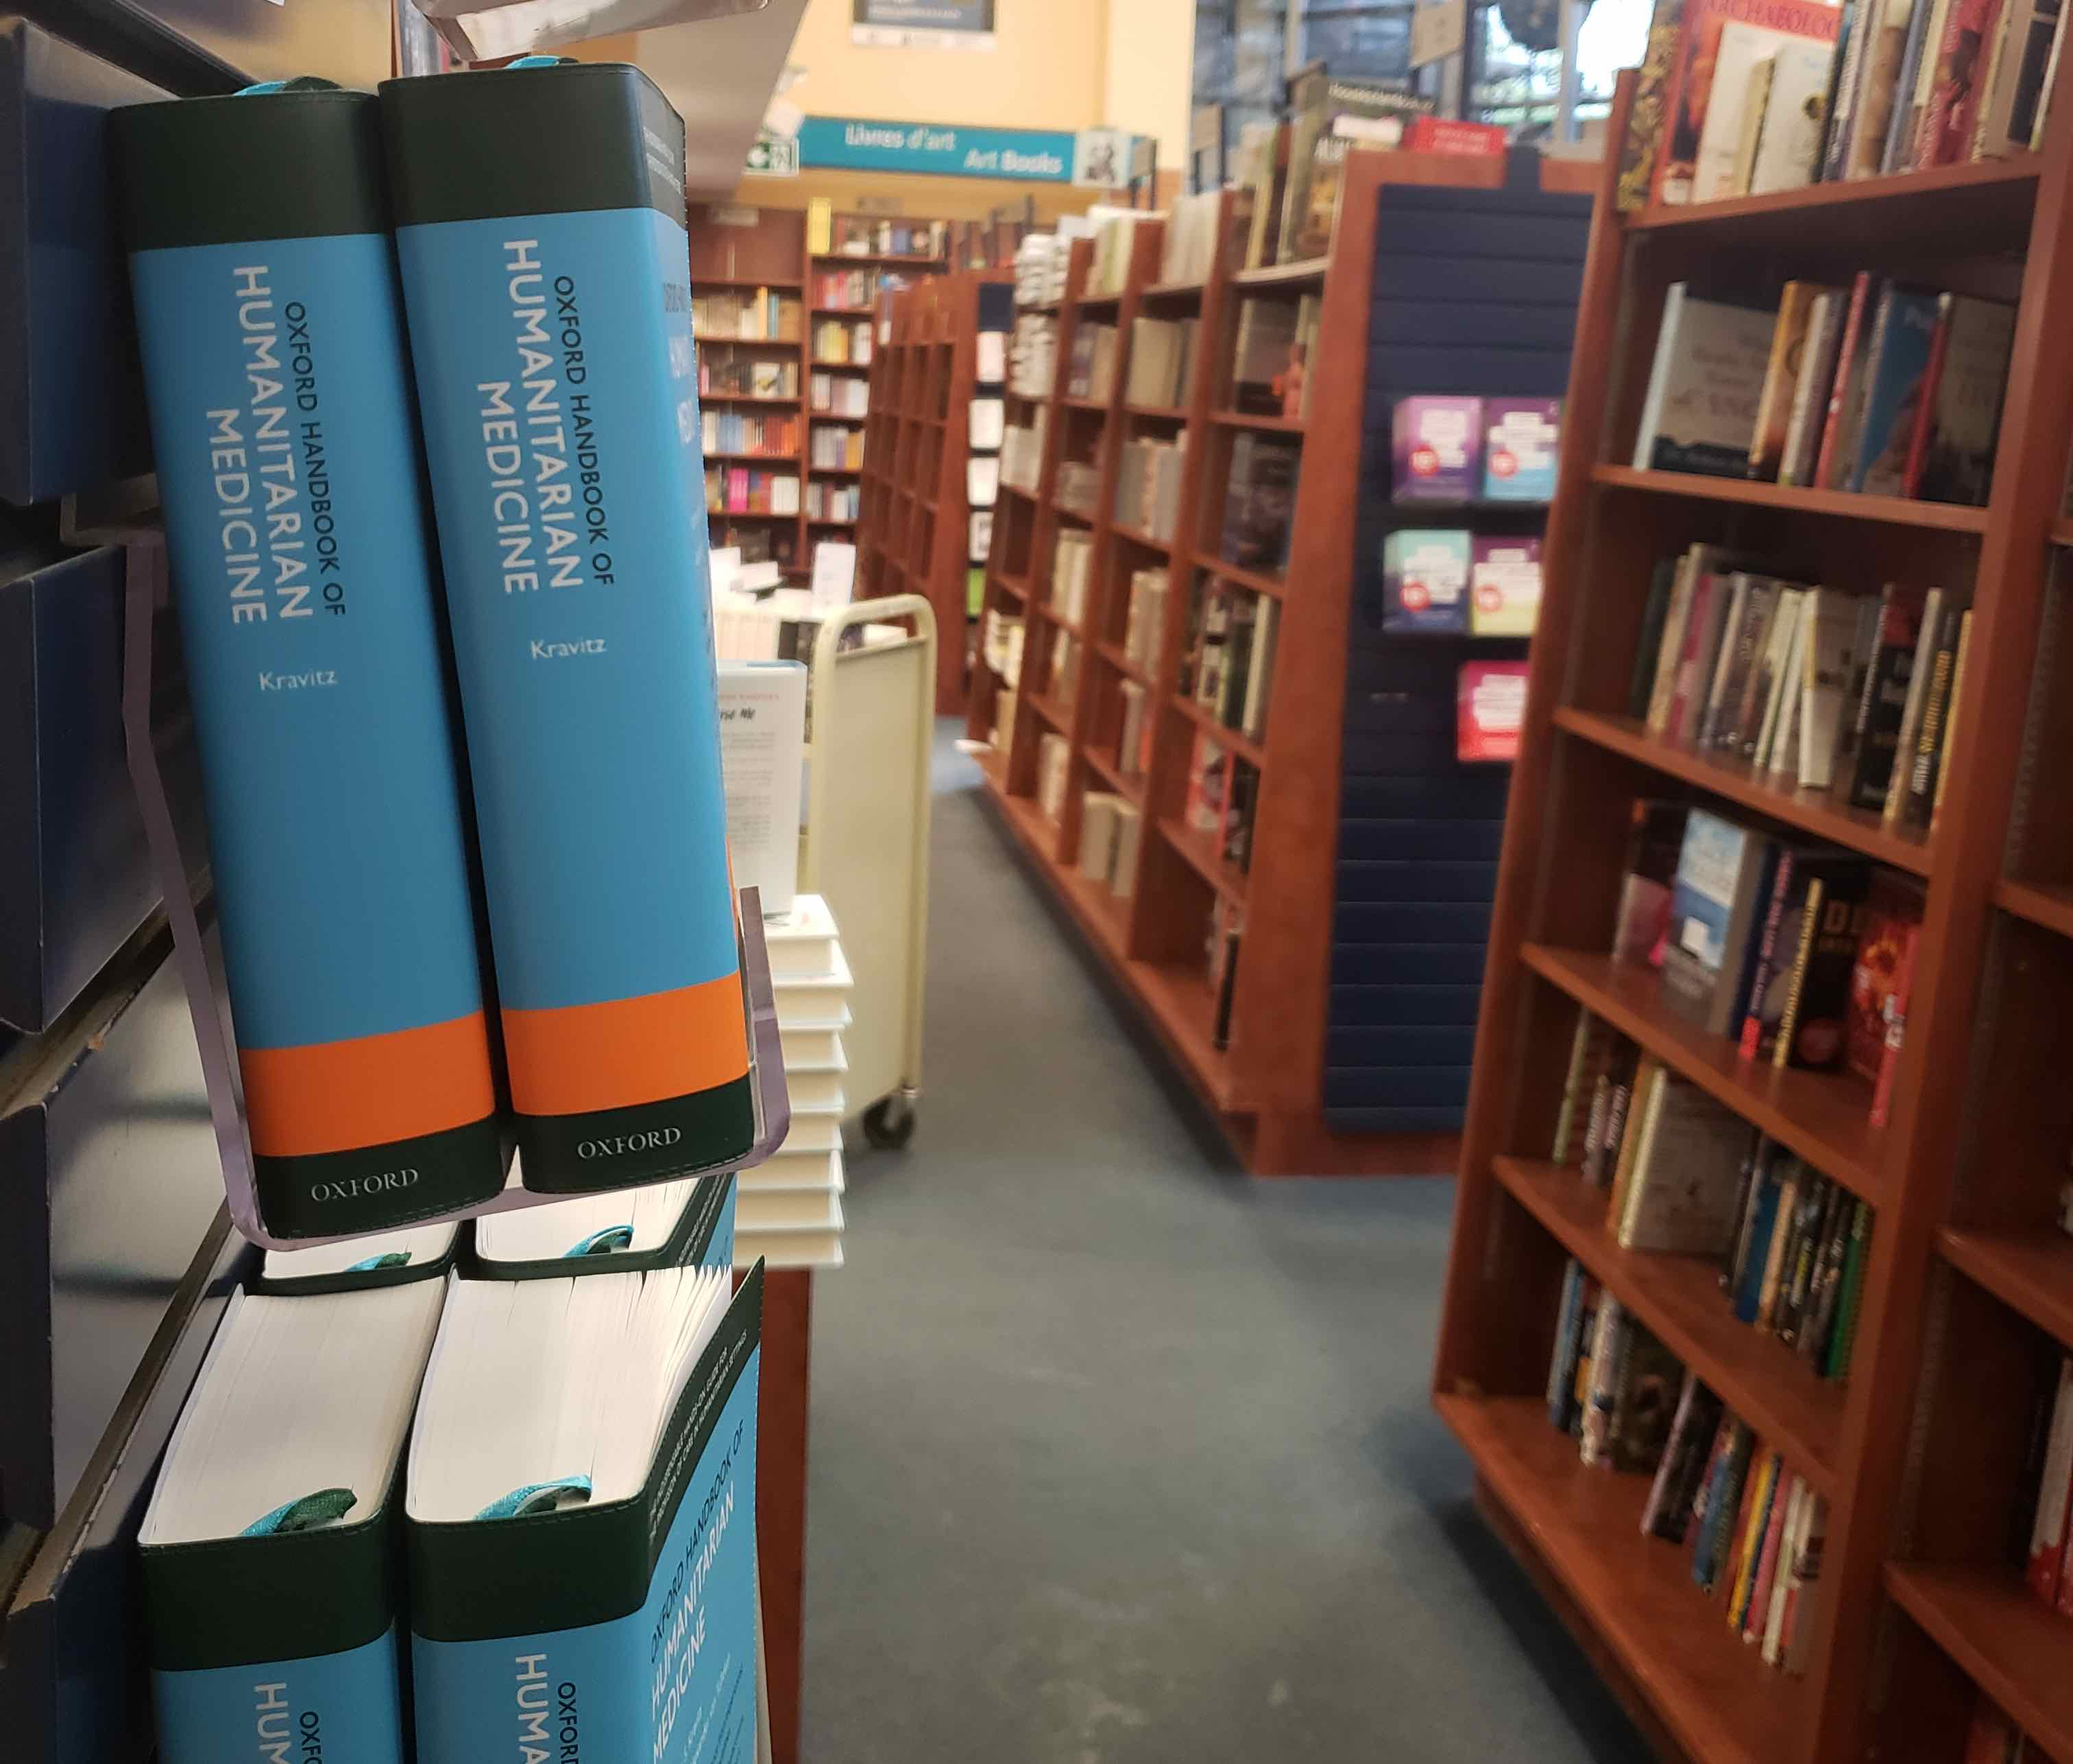 Copies of Oxford Handbook of Humanitarian Medicine displayed in a bookstore